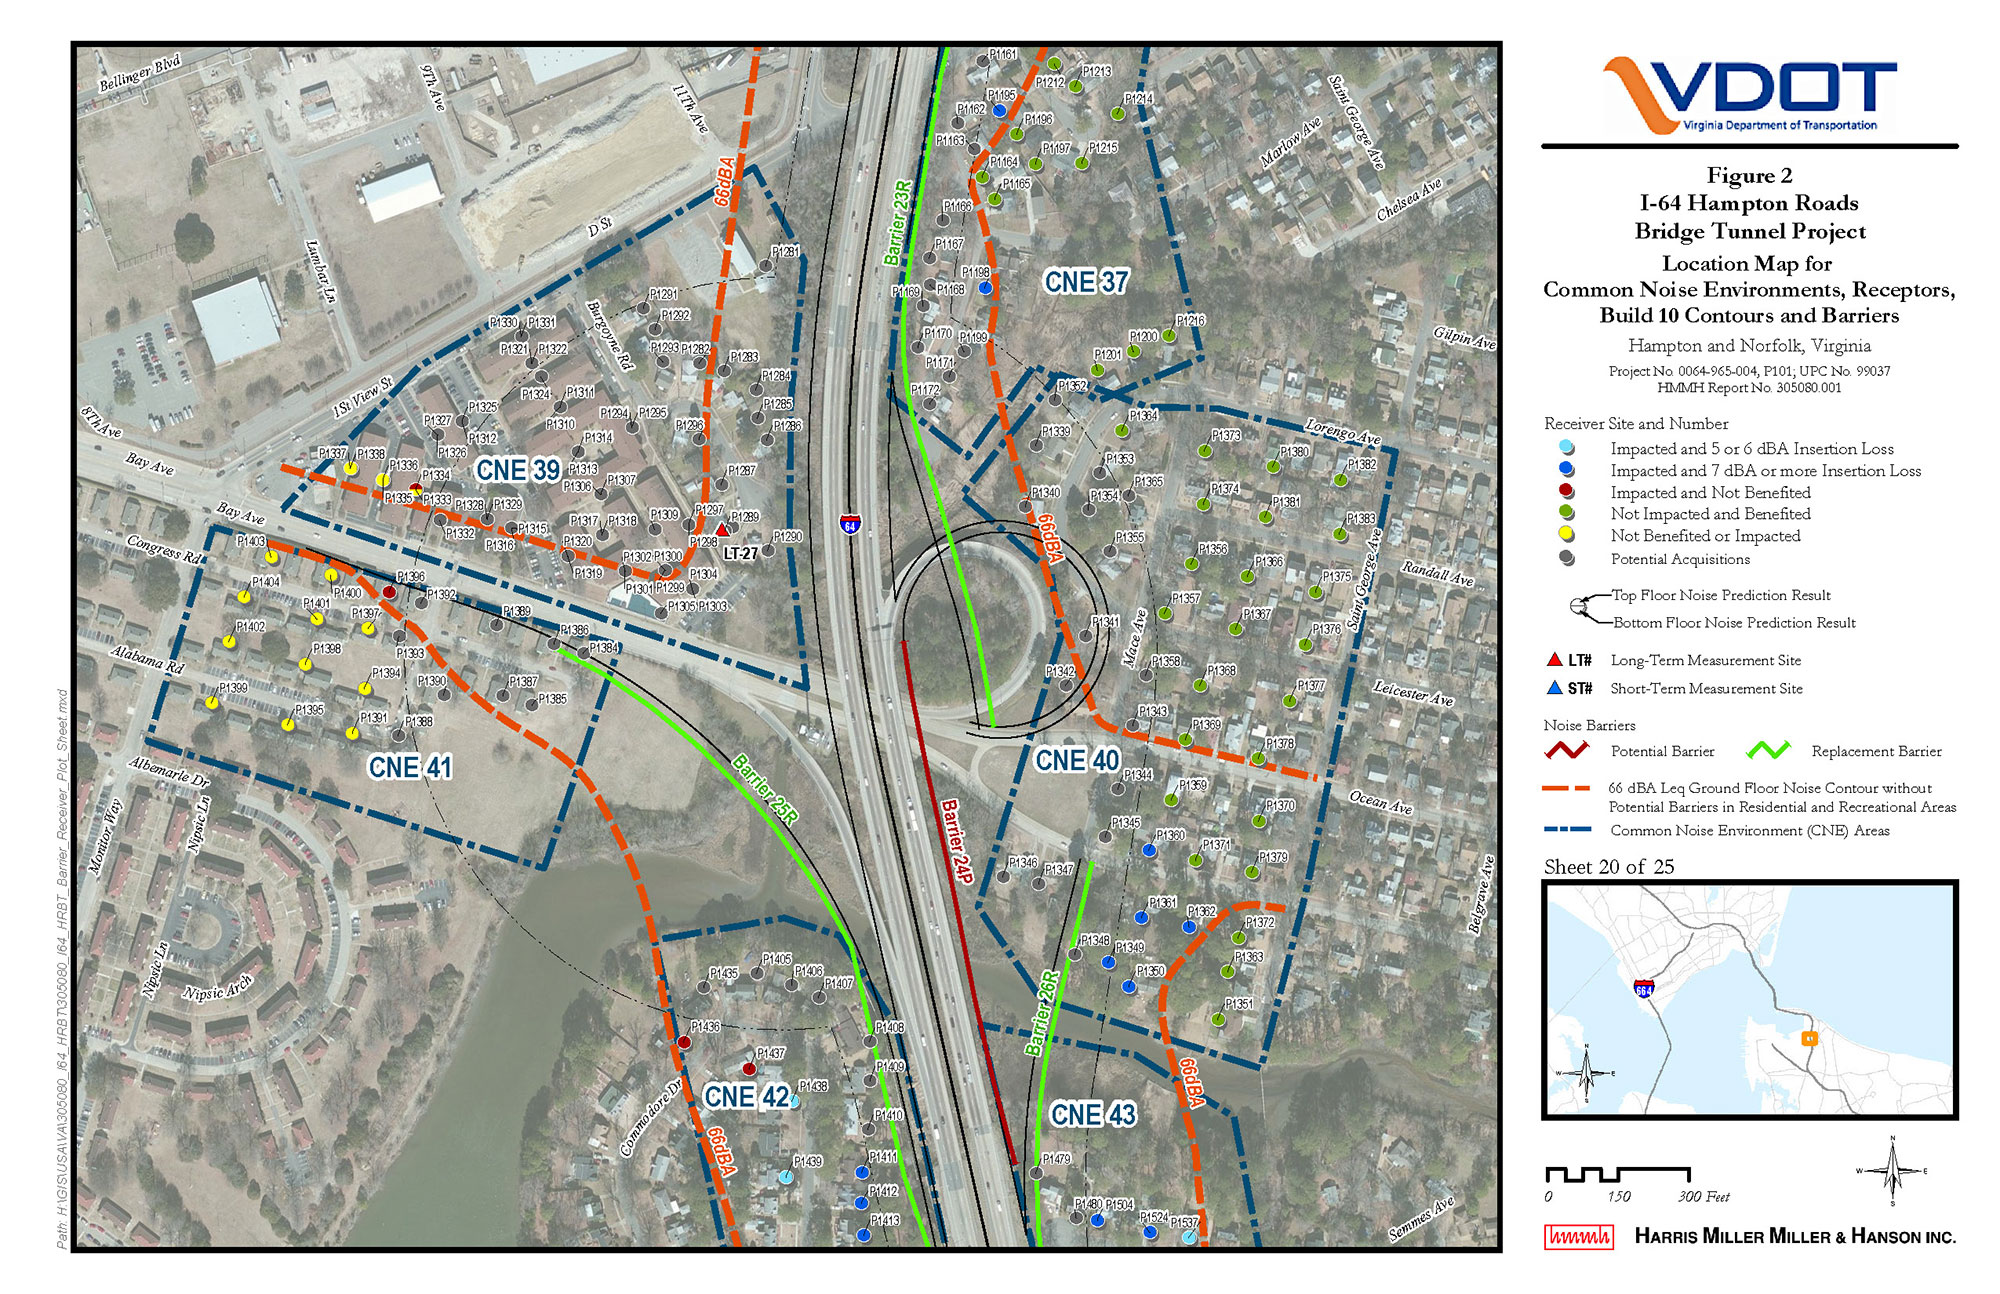 VDOT I-64 Hampton Roads Bridge-Tunnel Study